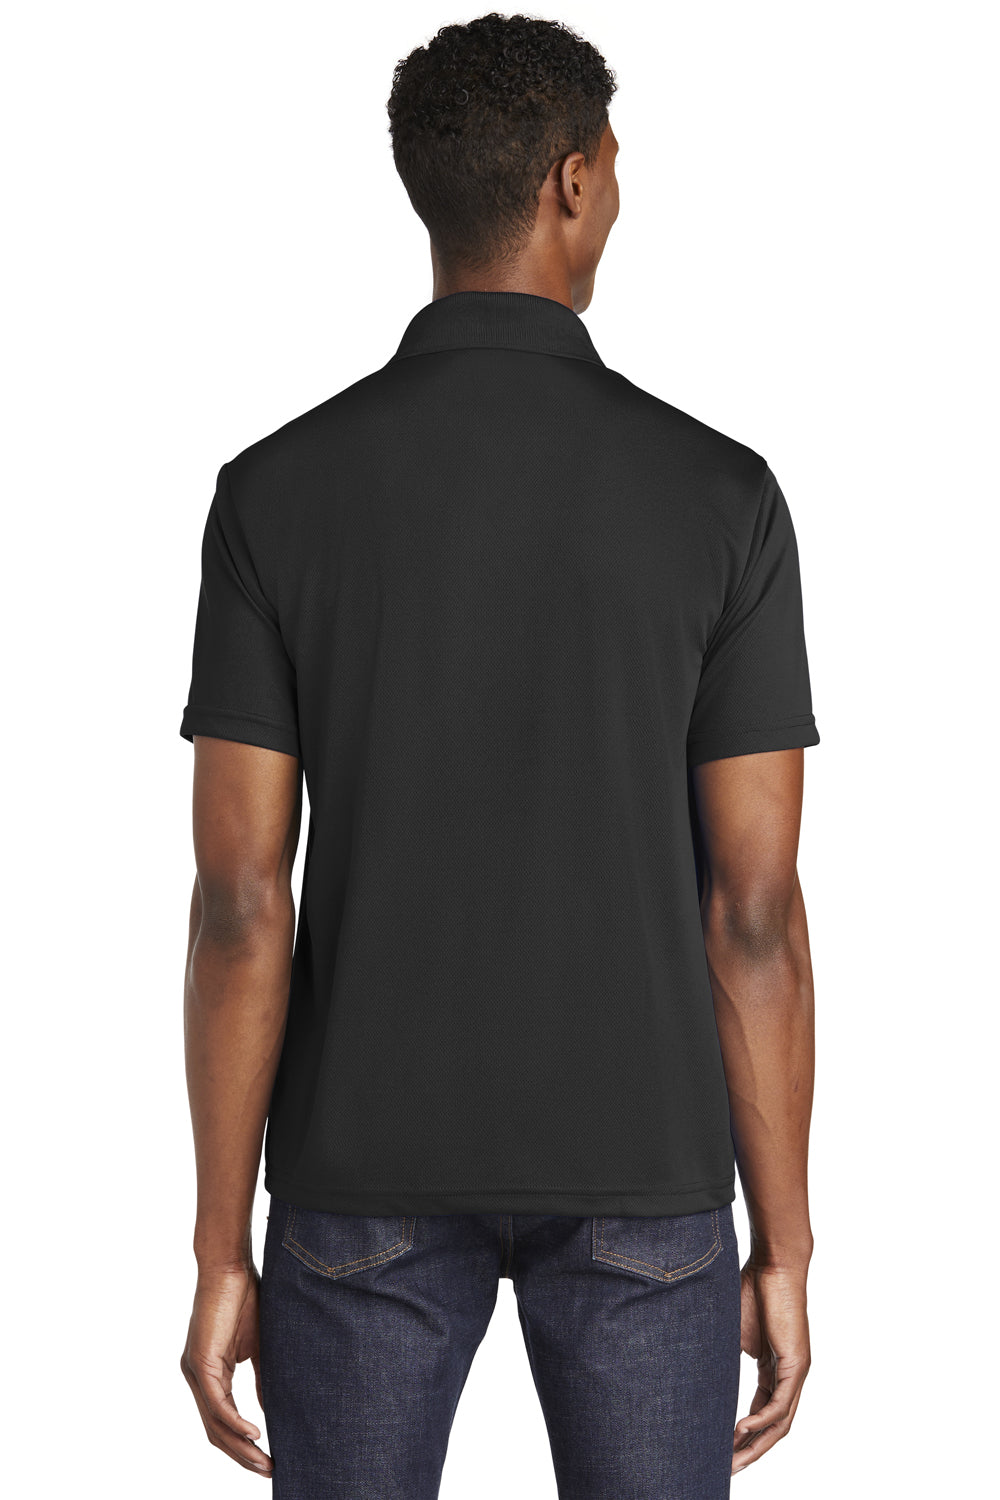 Sport-Tek ST640 Mens RacerMesh Moisture Wicking Short Sleeve Polo Shirt Black Back